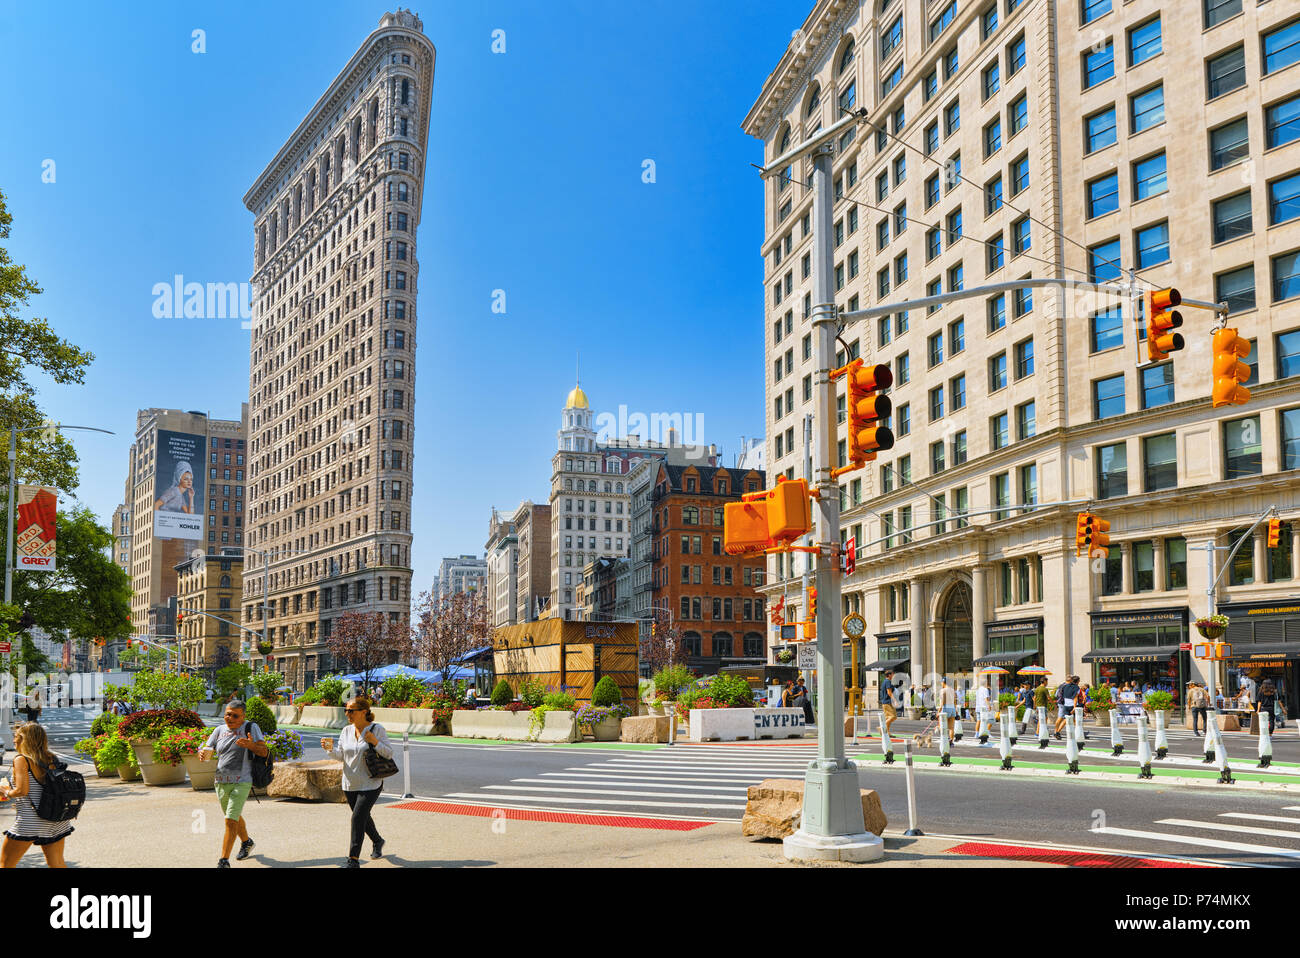 New York, USA- September 05, 2017 : Flatiron Building on 5th Avenue near Madison Square Park. Urban views of New York. Street, people and tourists on  - Stock Image